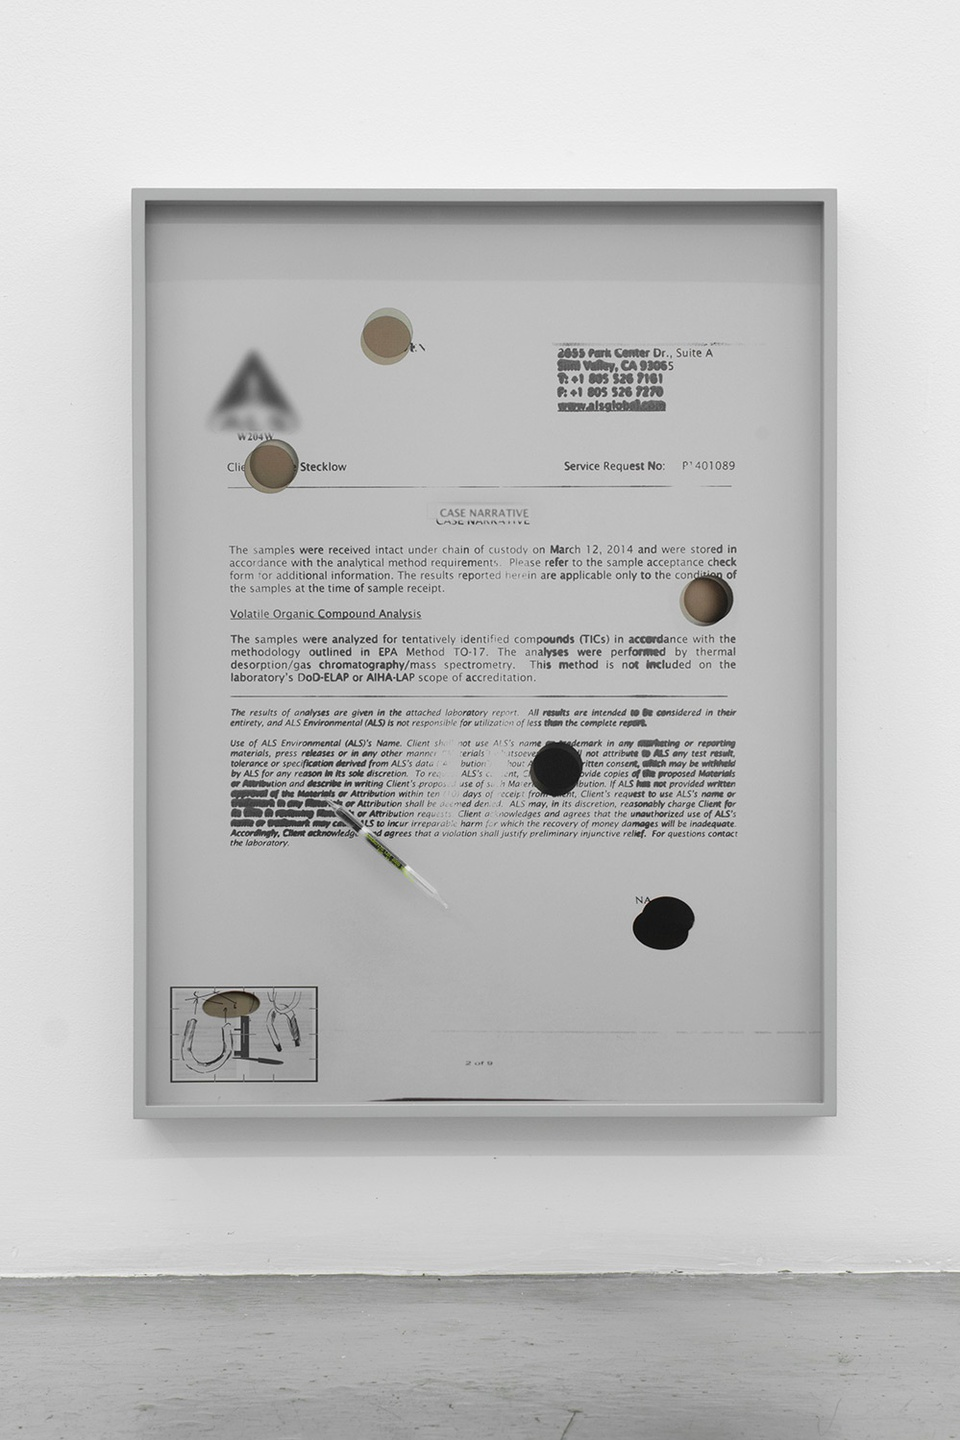 Image: Jesse Stecklow  Untitled (Variant, Case Narrative), 2014  framed archival pigment print, Munsell neutral gray paint, sorbent tube  24 x 18 x 2-1/2 inches  unique